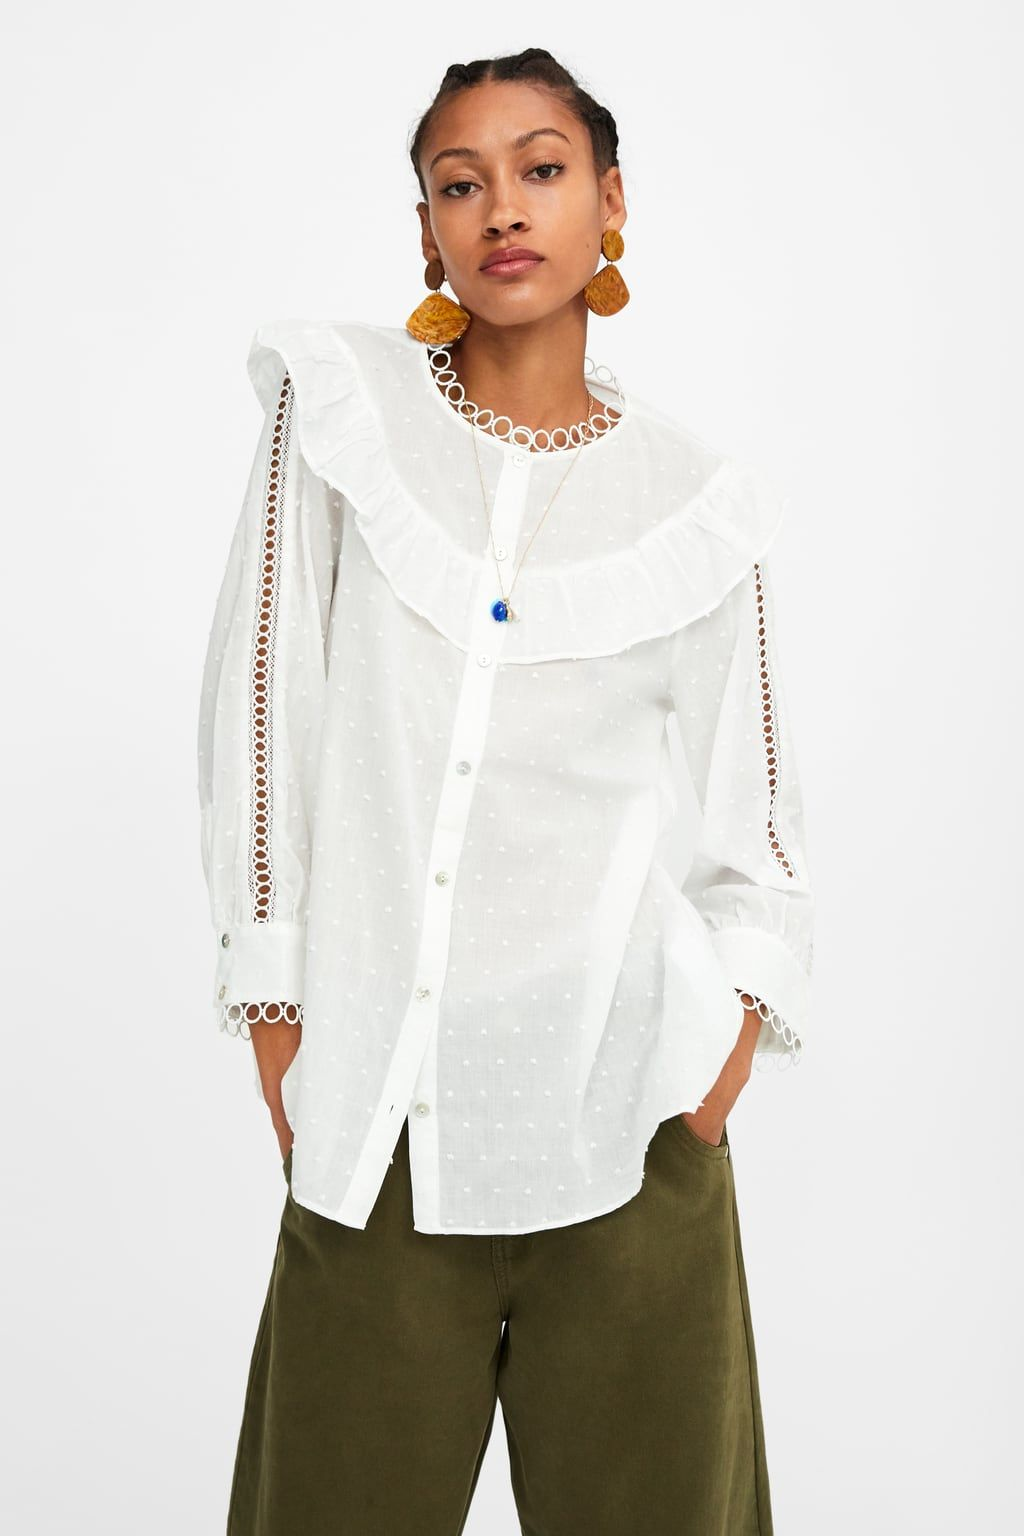 fccb1896c3 Dotted mesh blouse in 2019 | Zara | Blouse, Shirt blouses, High ...